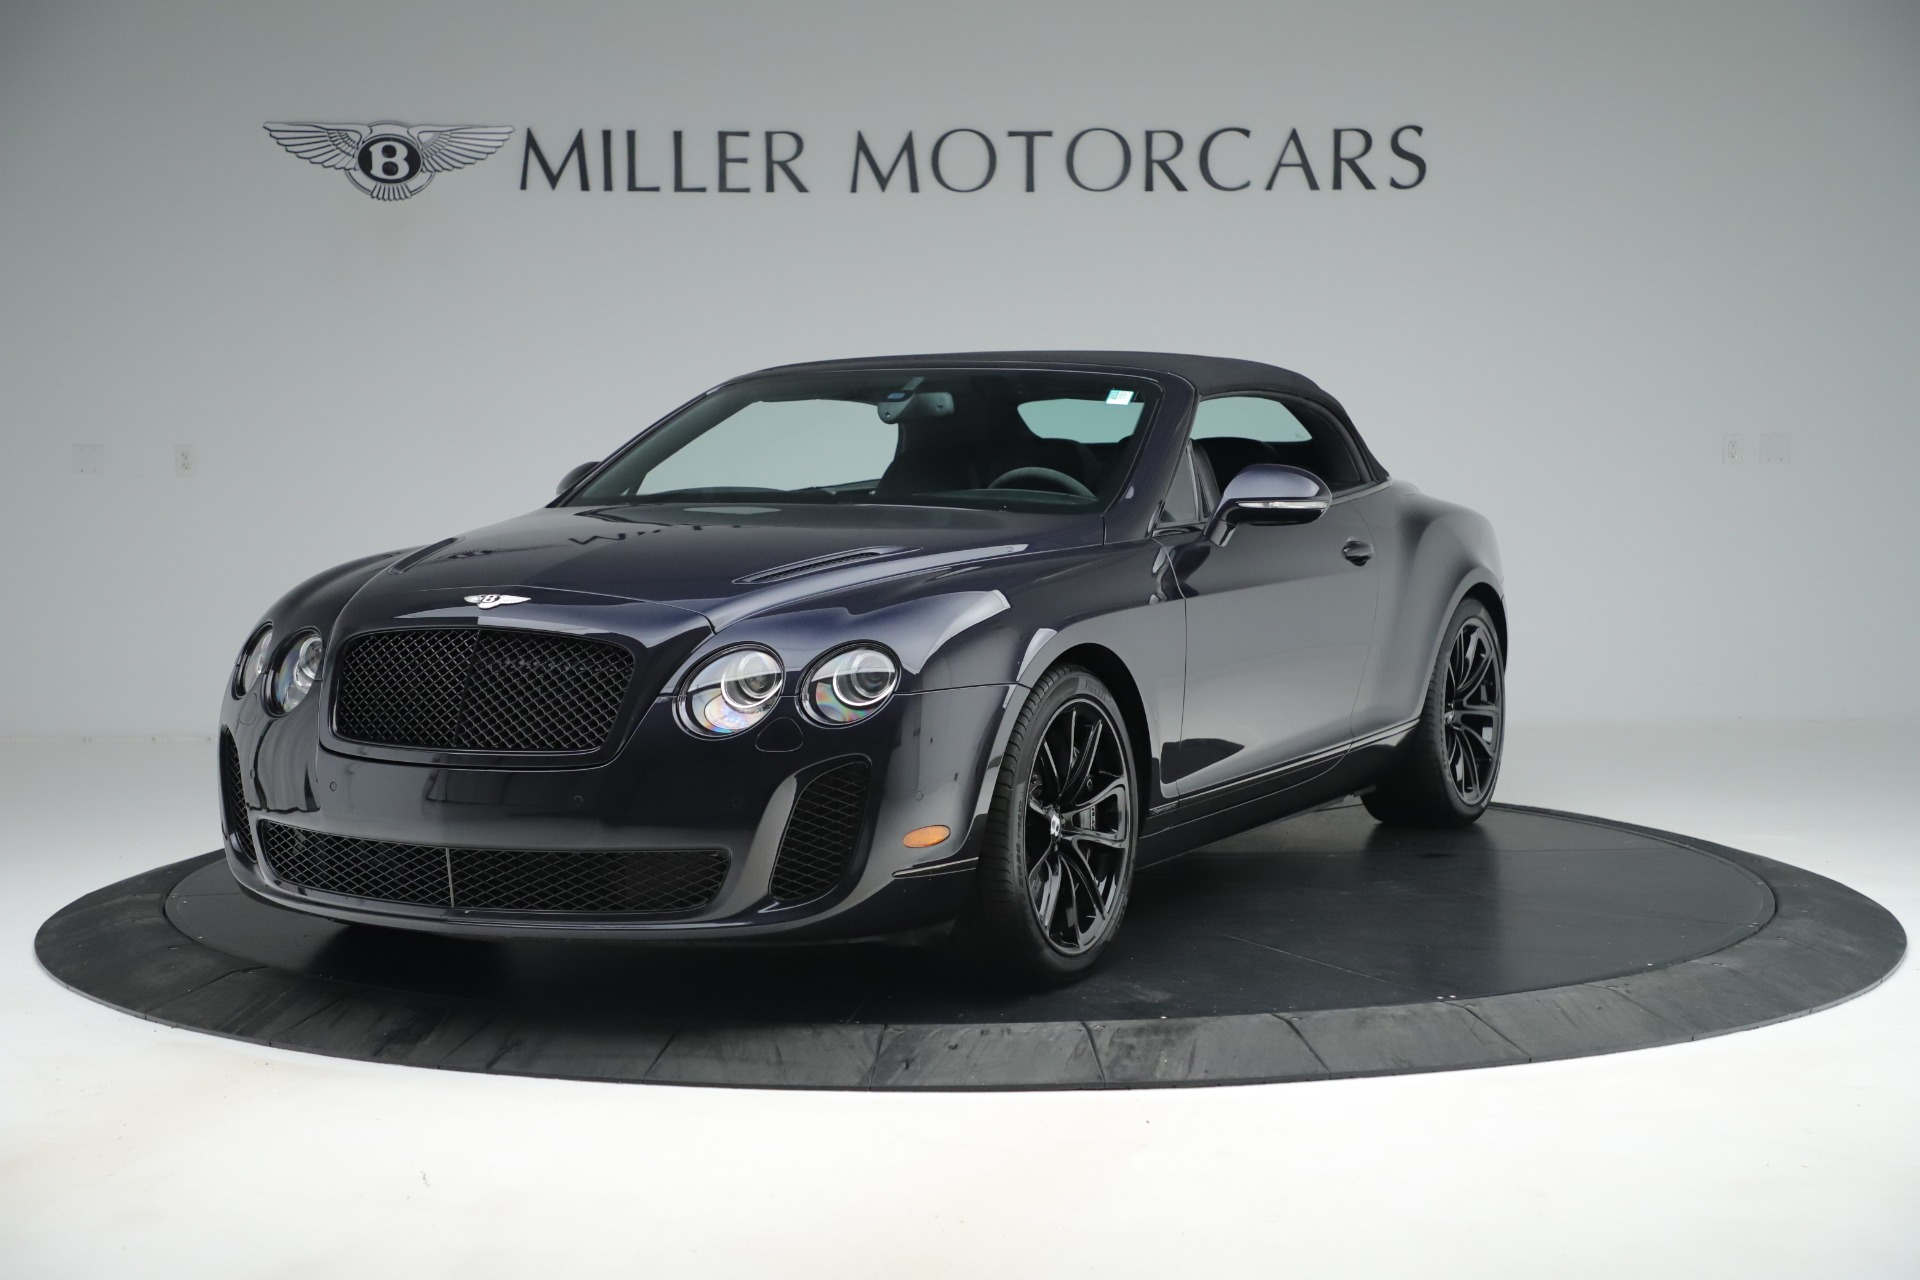 Used 2012 Bentley Continental Supersports Supersports For Sale In Westport, CT 3214_p13